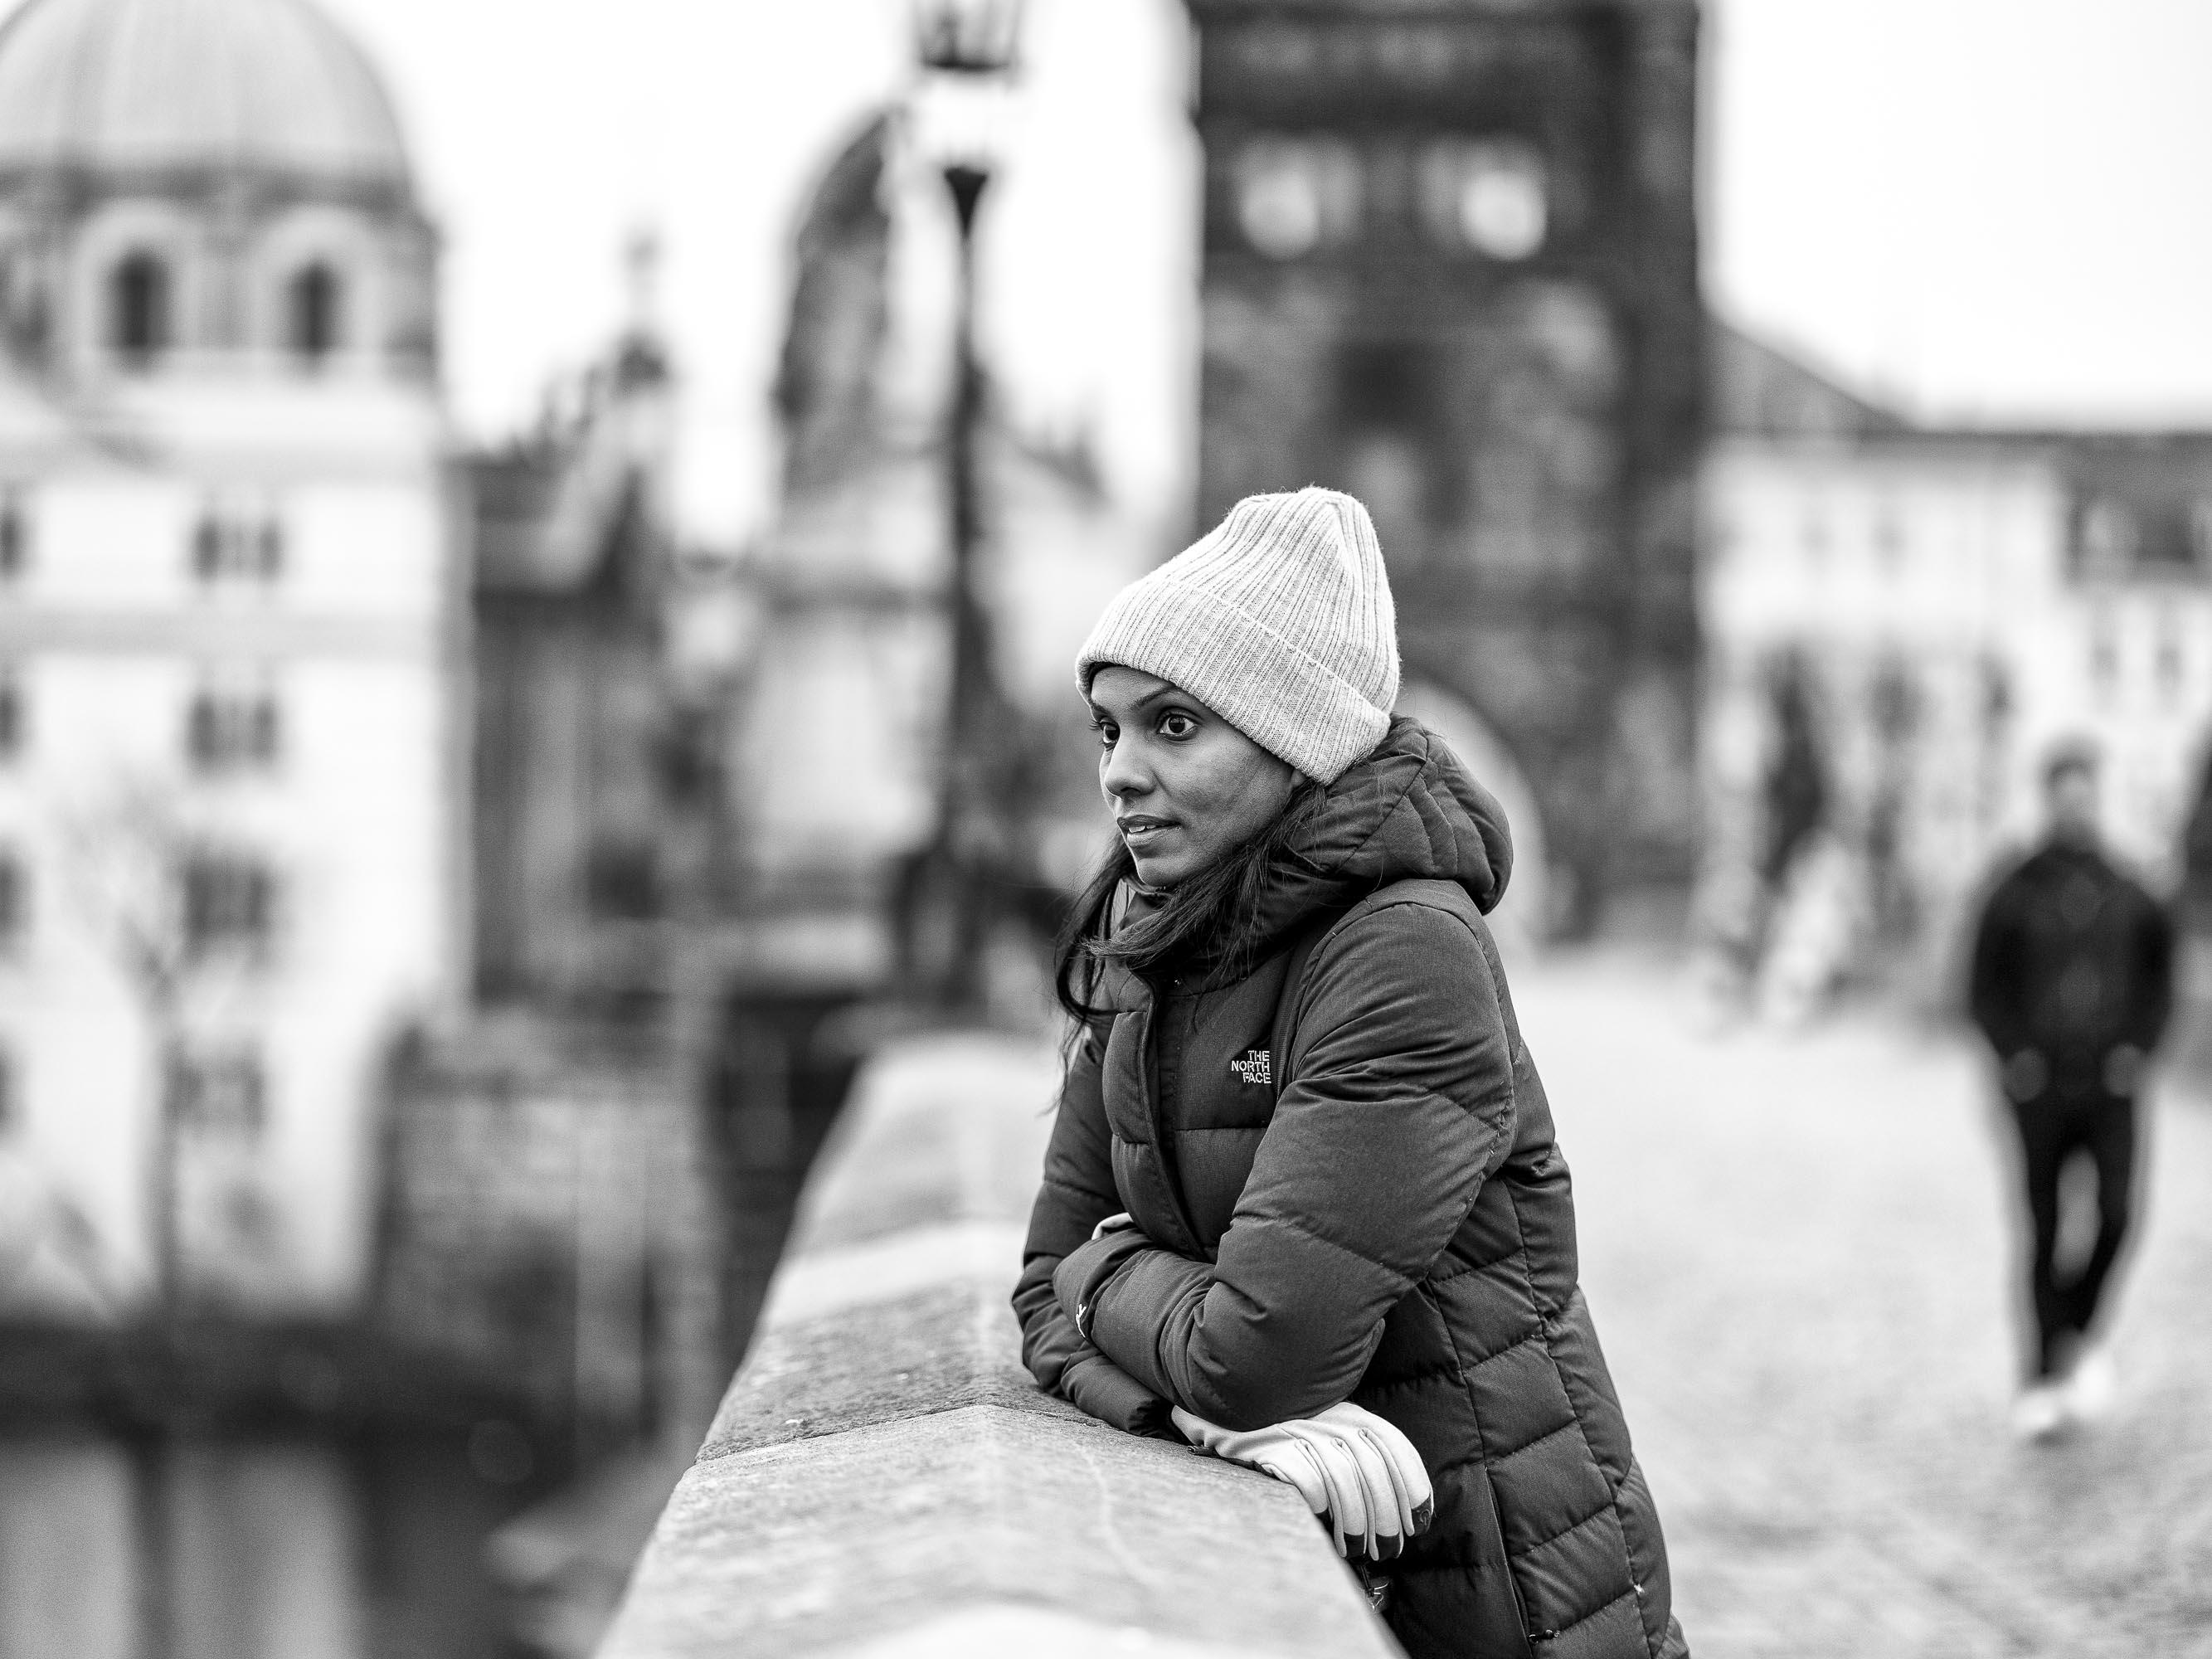 journey Charles bridge travel photography Fujifilm CZ prague Shanthi jeuland